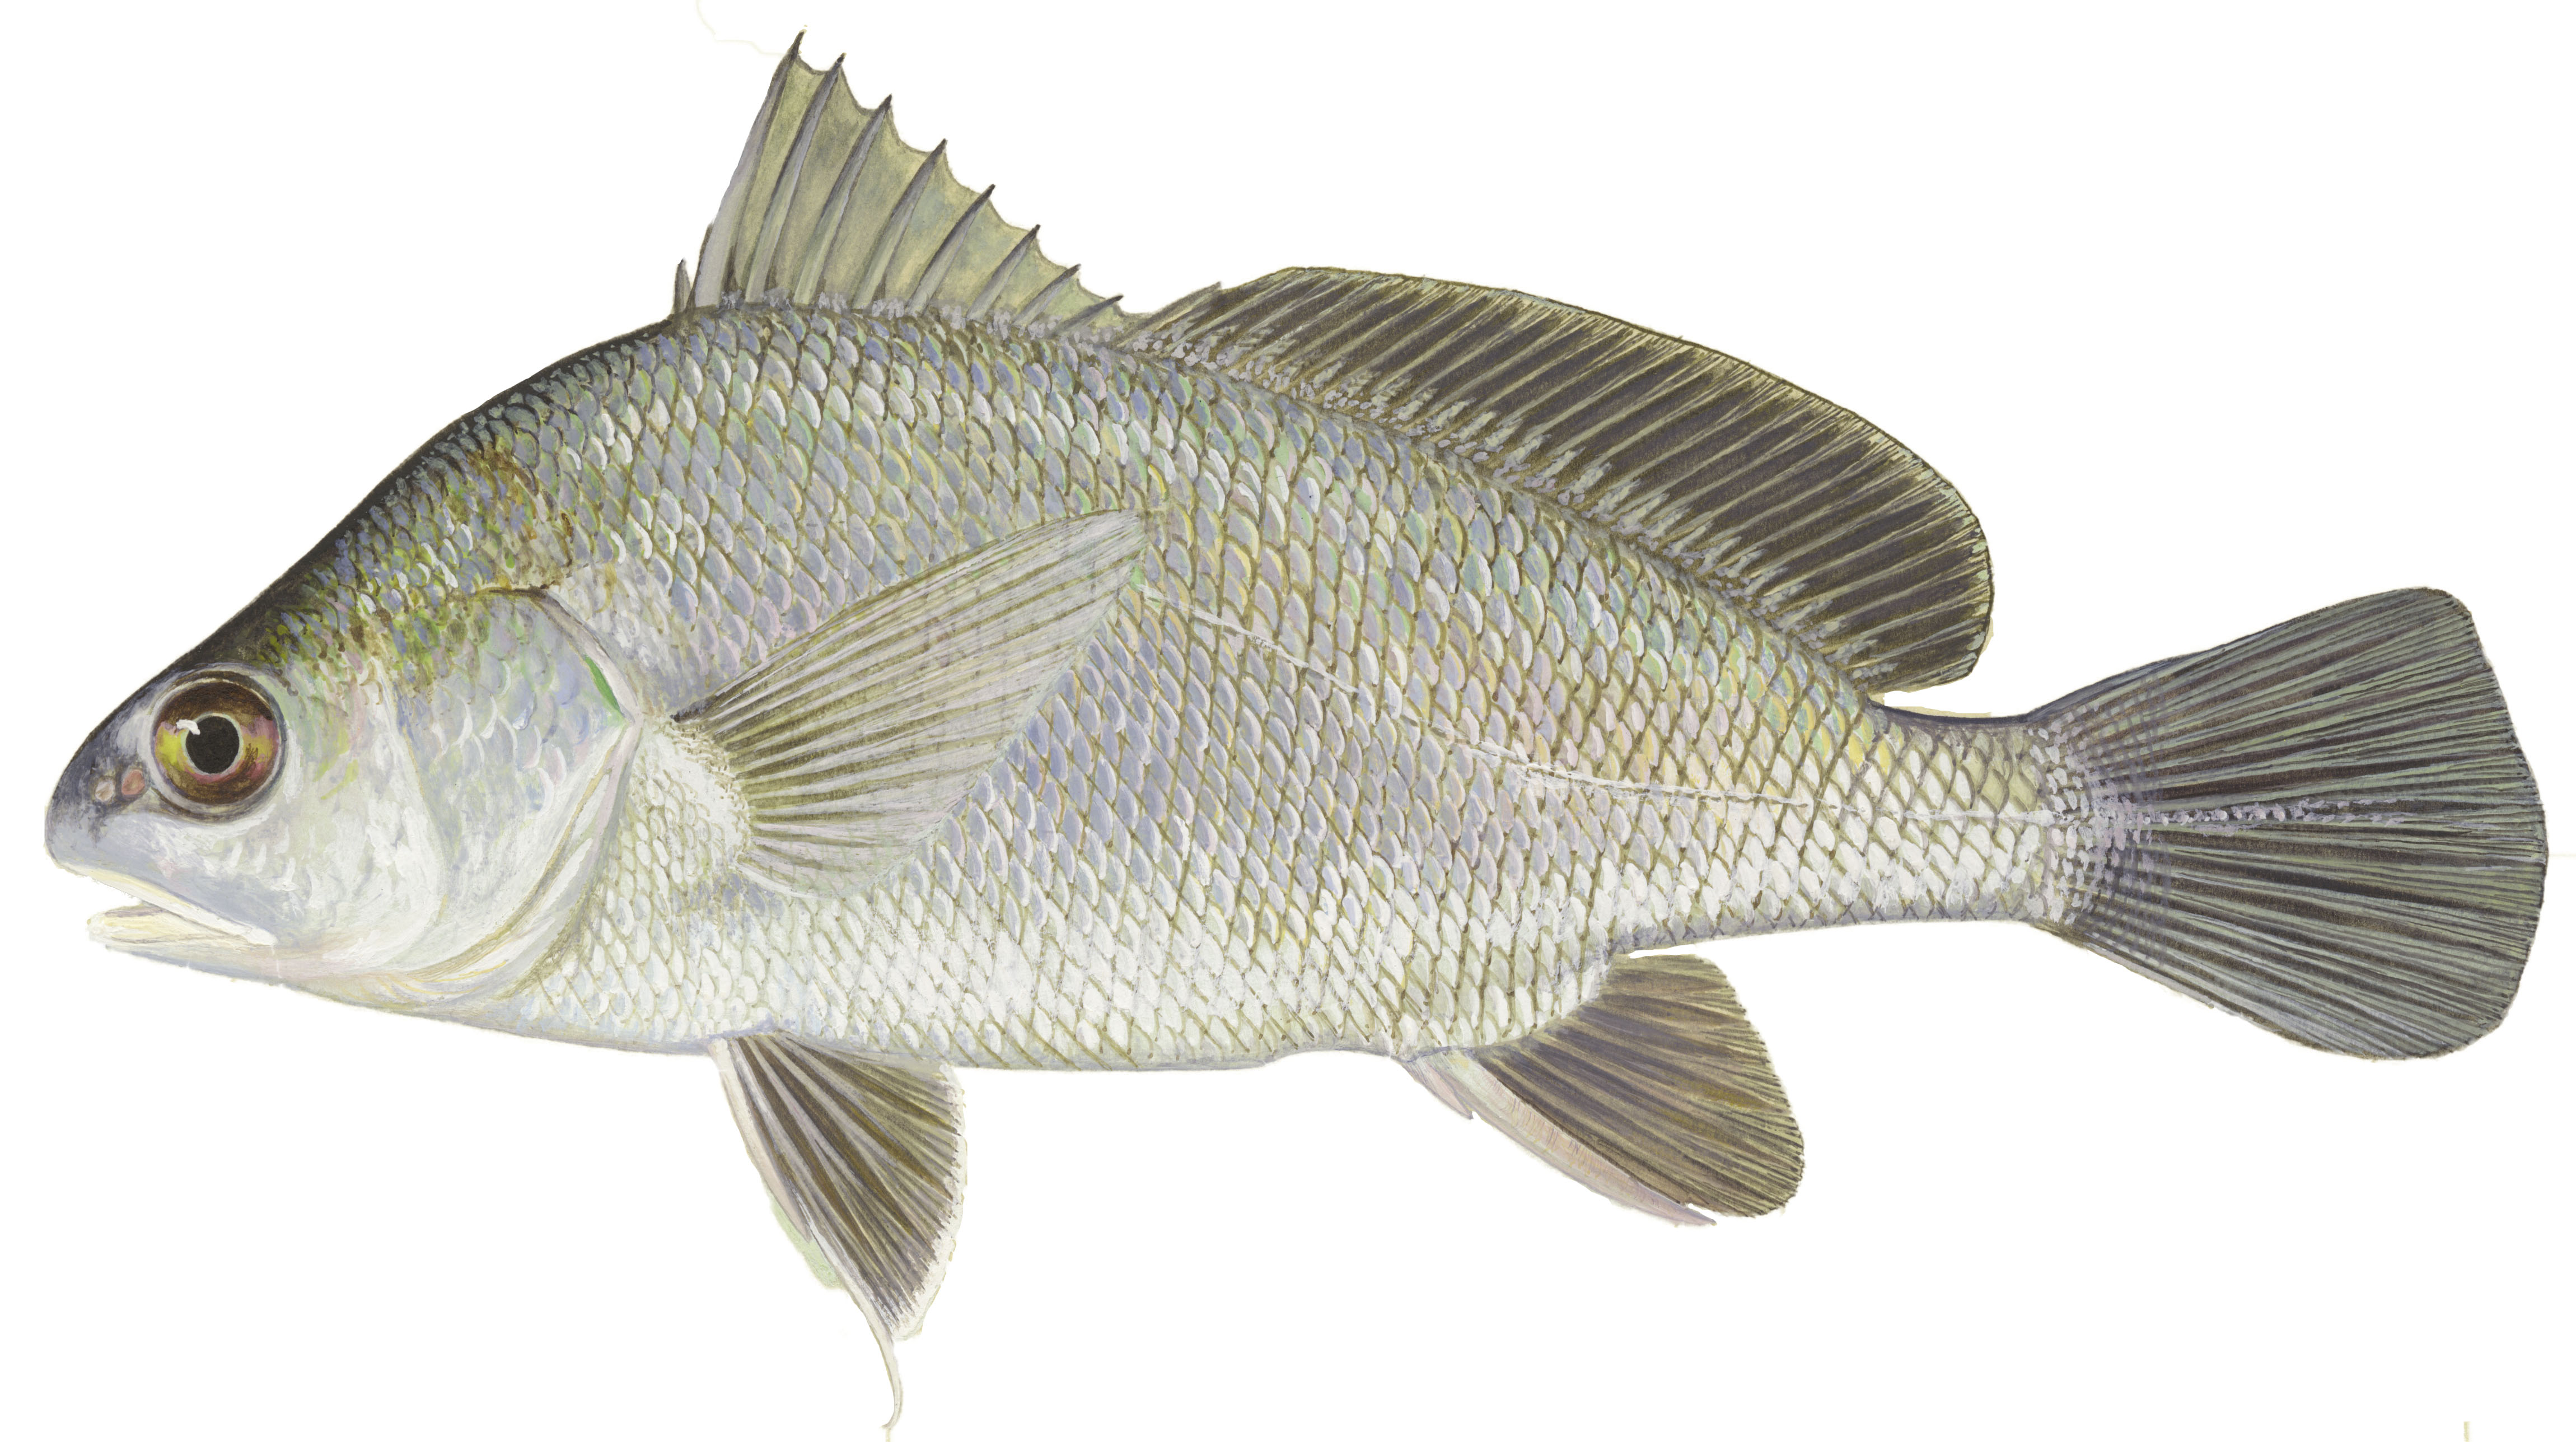 Freshwater Drum, illustration by Maynard Reece, from Iowa Fish and Fishing.